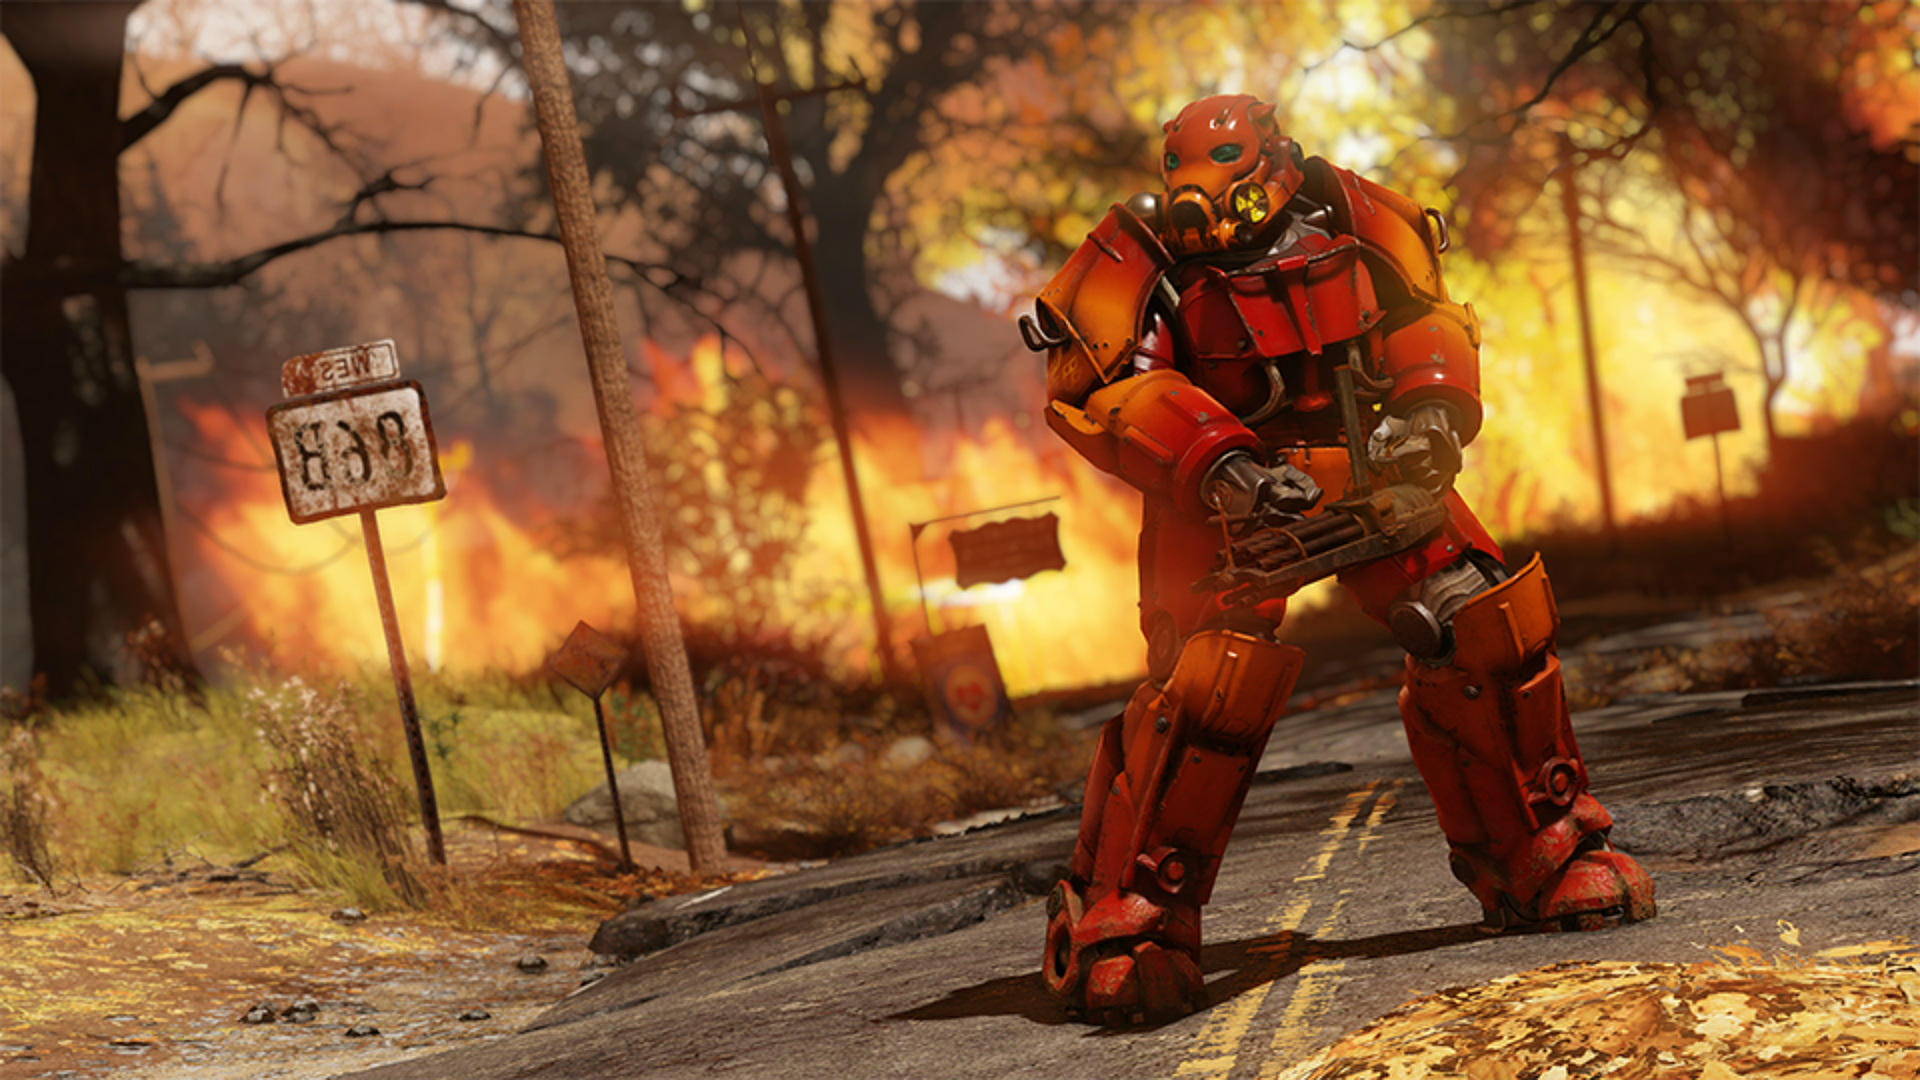 Fallout 76 - a power armor wearing soldier with a mini gun poses menacingly. His armor is painted red, and a forest fire rages in the background.